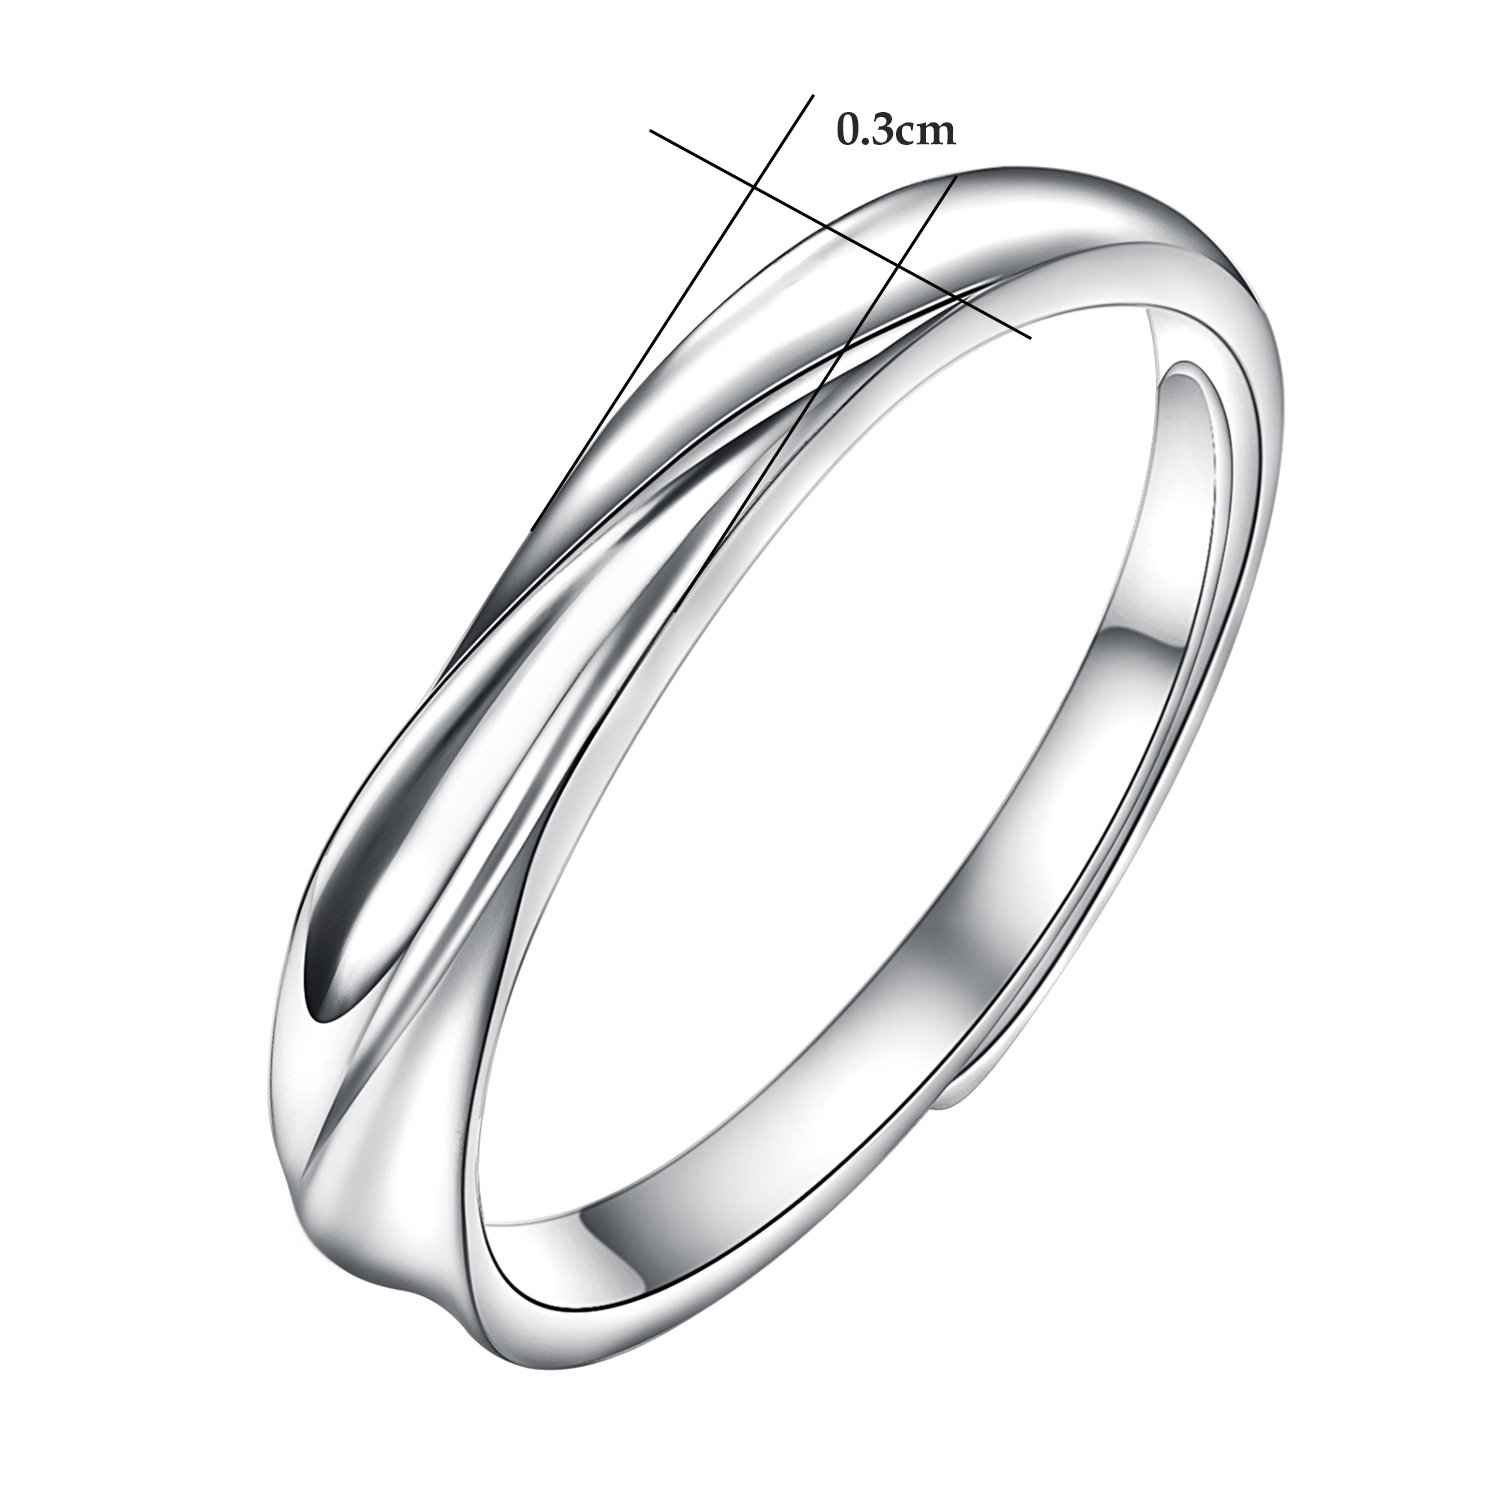 2e1fed9d3d Amazon.com: Yoursfs His & Hers Matching Wedding Rings Adjustable CZ S925  Sterling Silver Rings for Men: Home & Kitchen